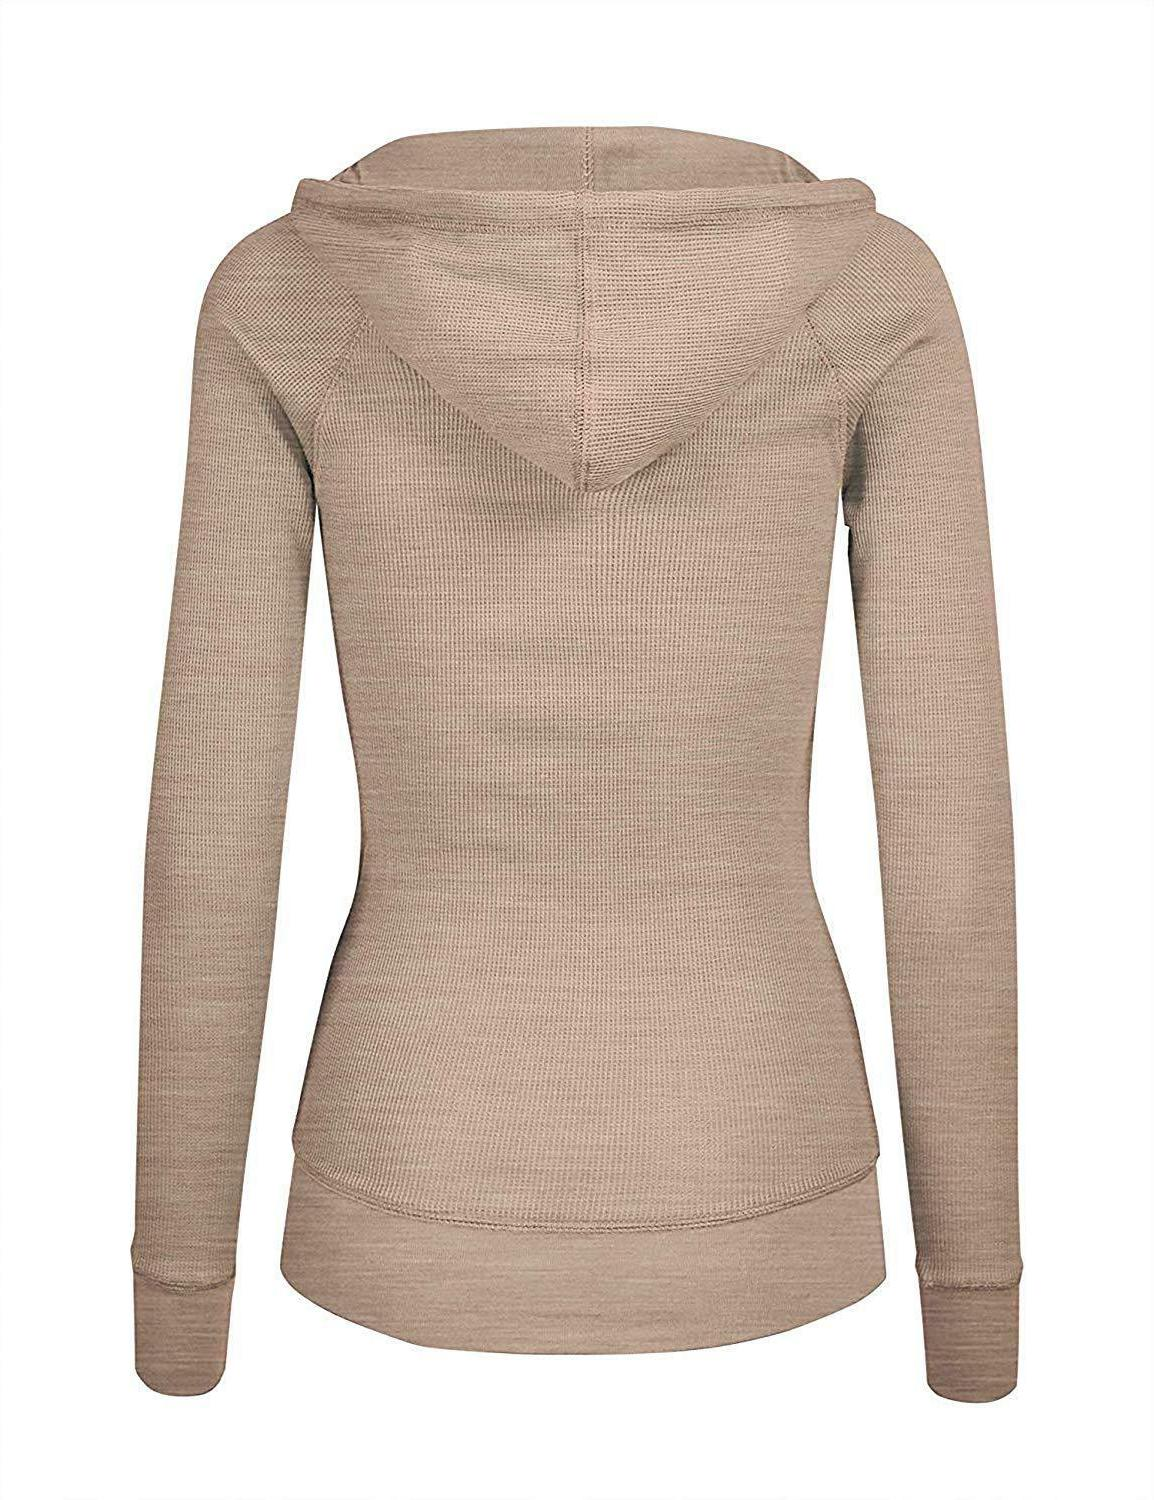 TL Women's Comfy Warm Hoodie Jackets in